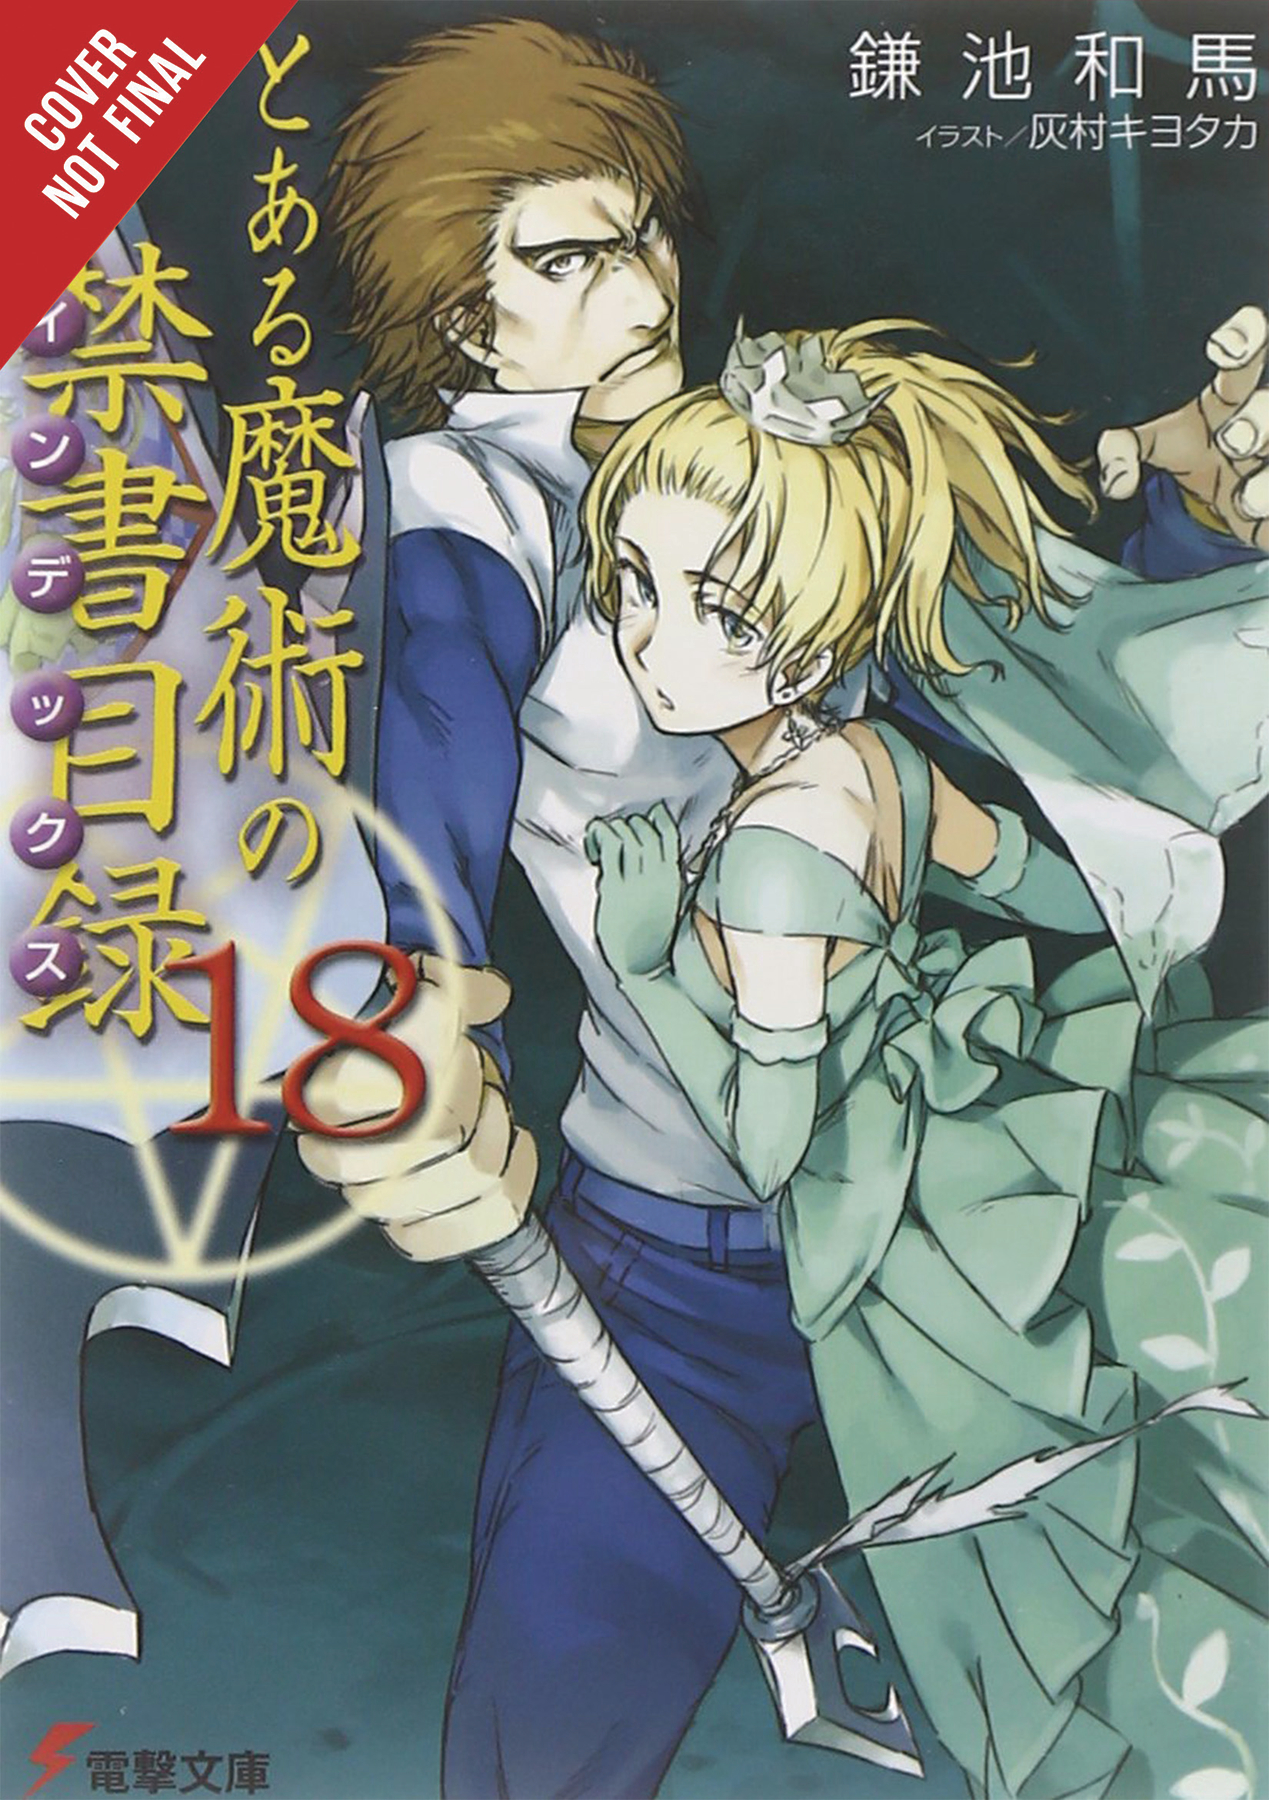 CERTAIN MAGICAL INDEX LIGHT NOVEL SC VOL 18